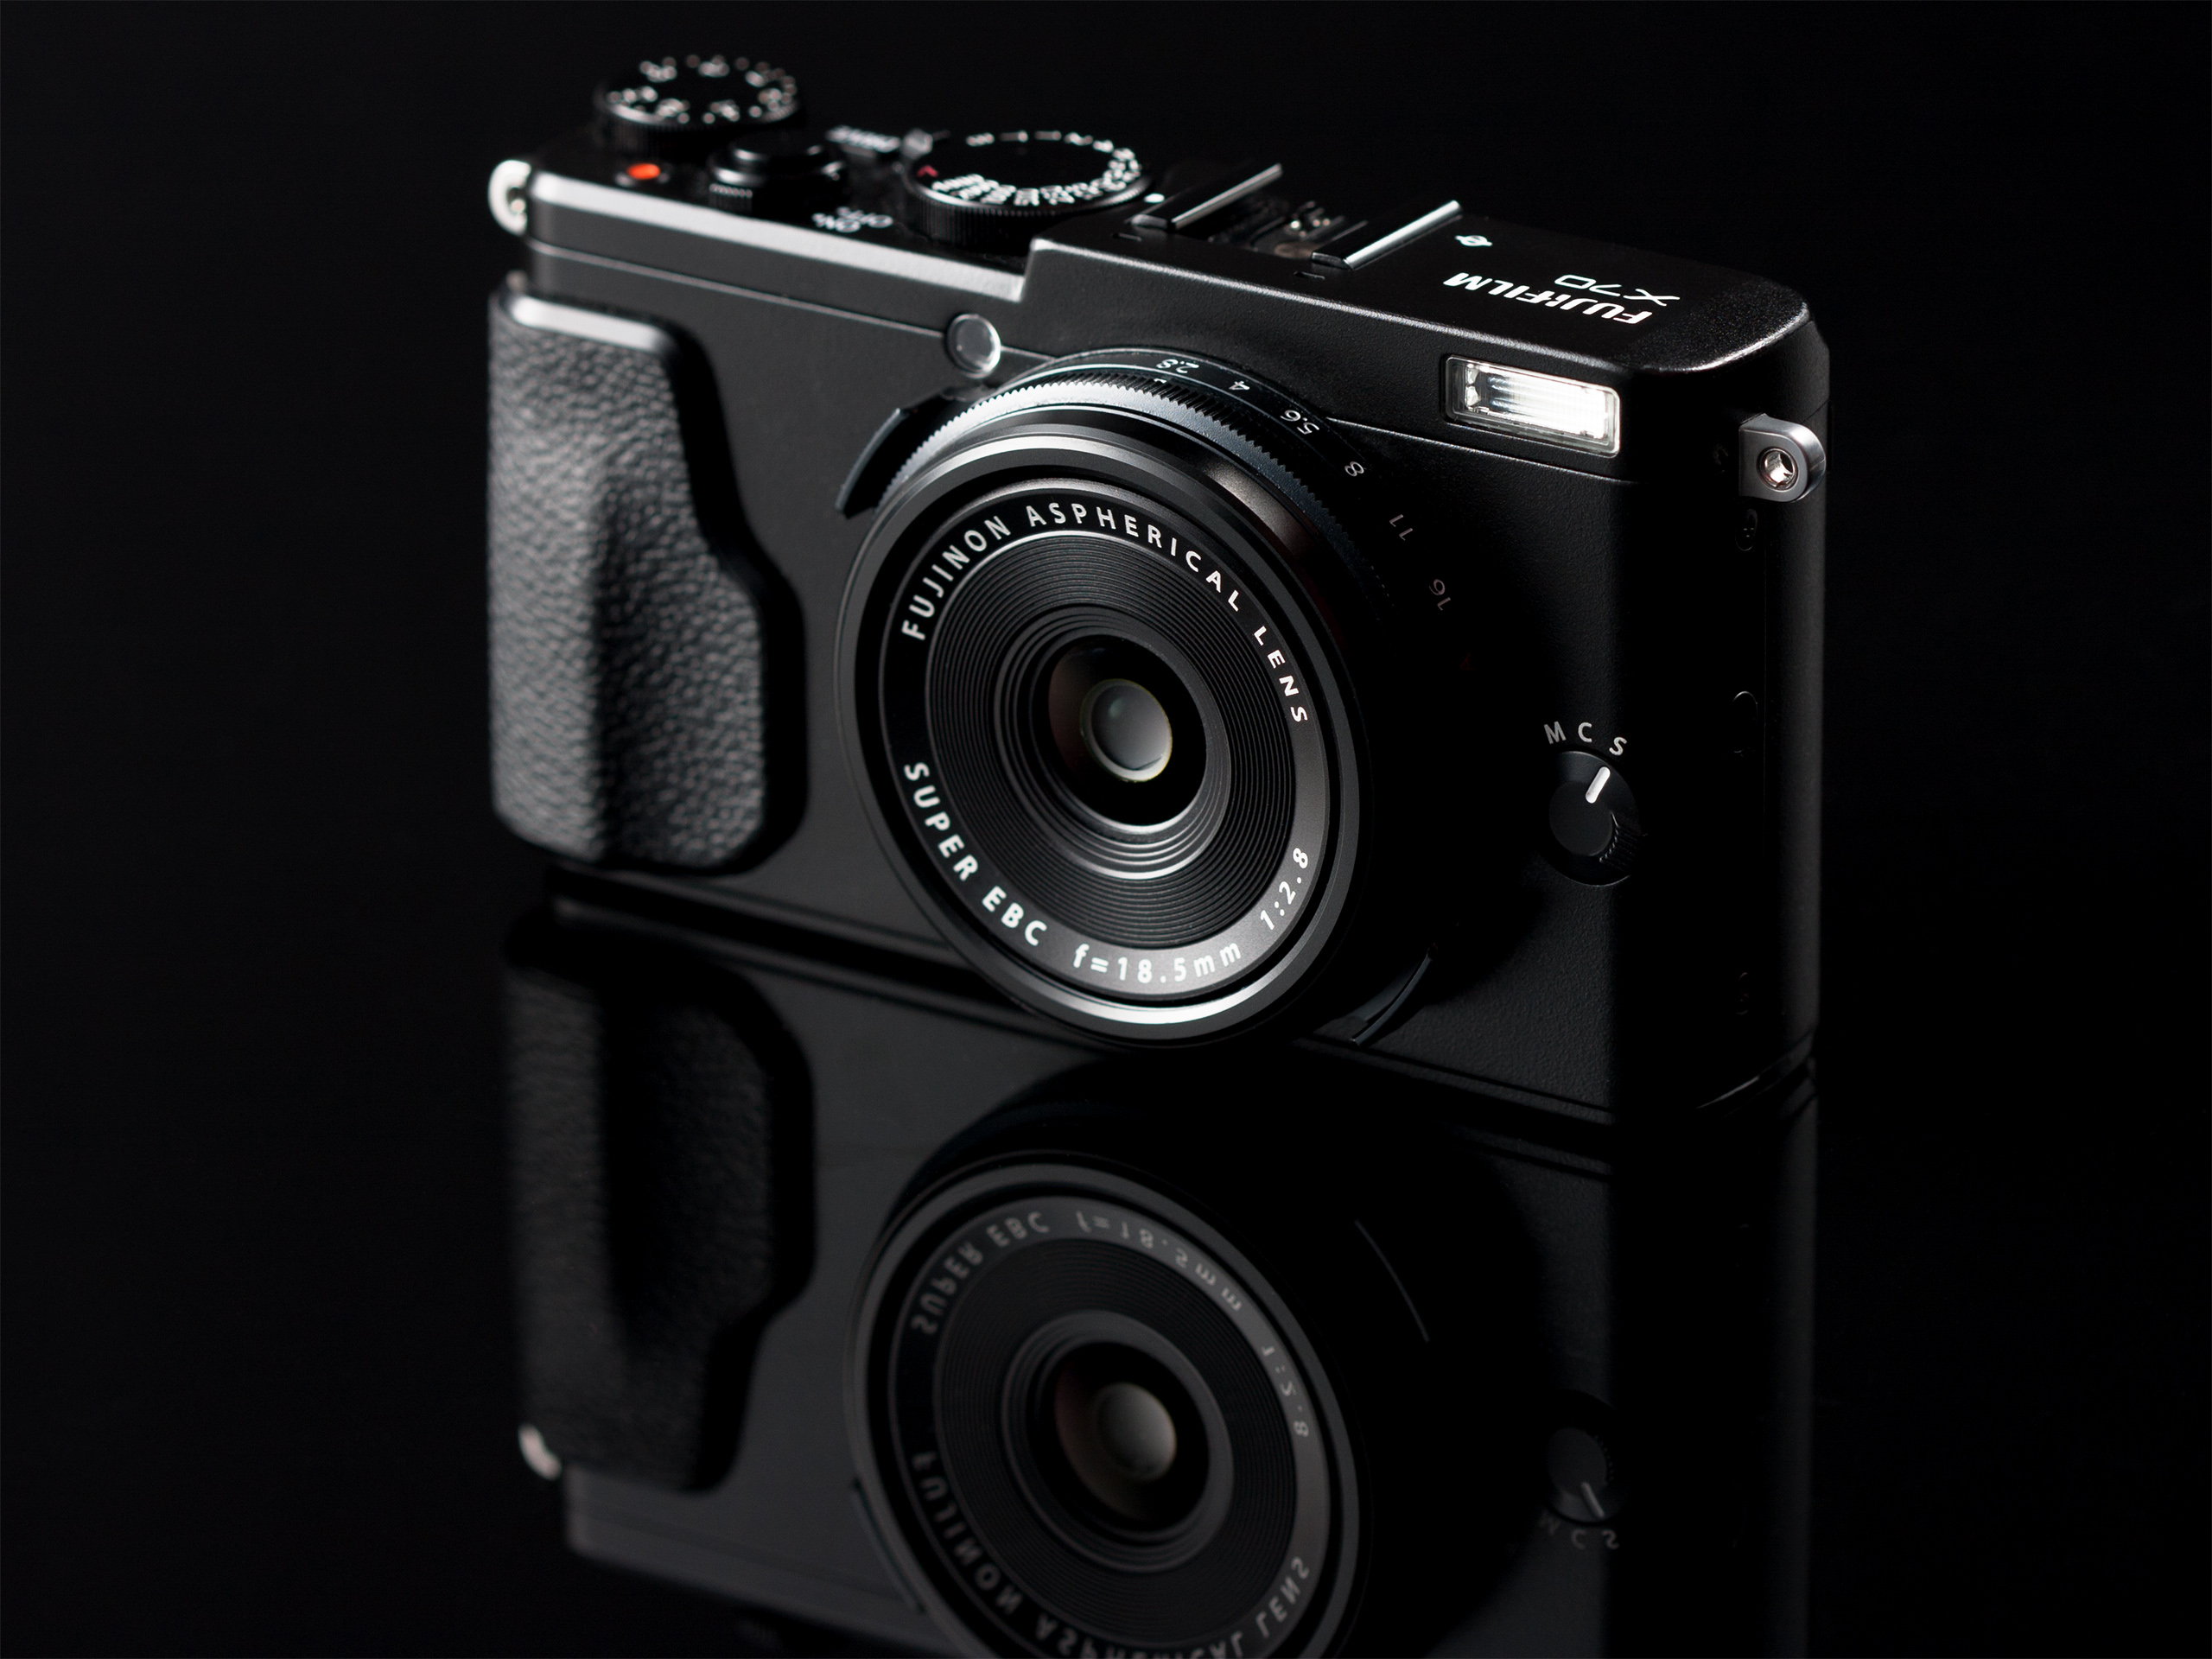 Fujifilm X Review Digital Photography Review - Spinning a camera whilst snapping a photo has some seriously cool results